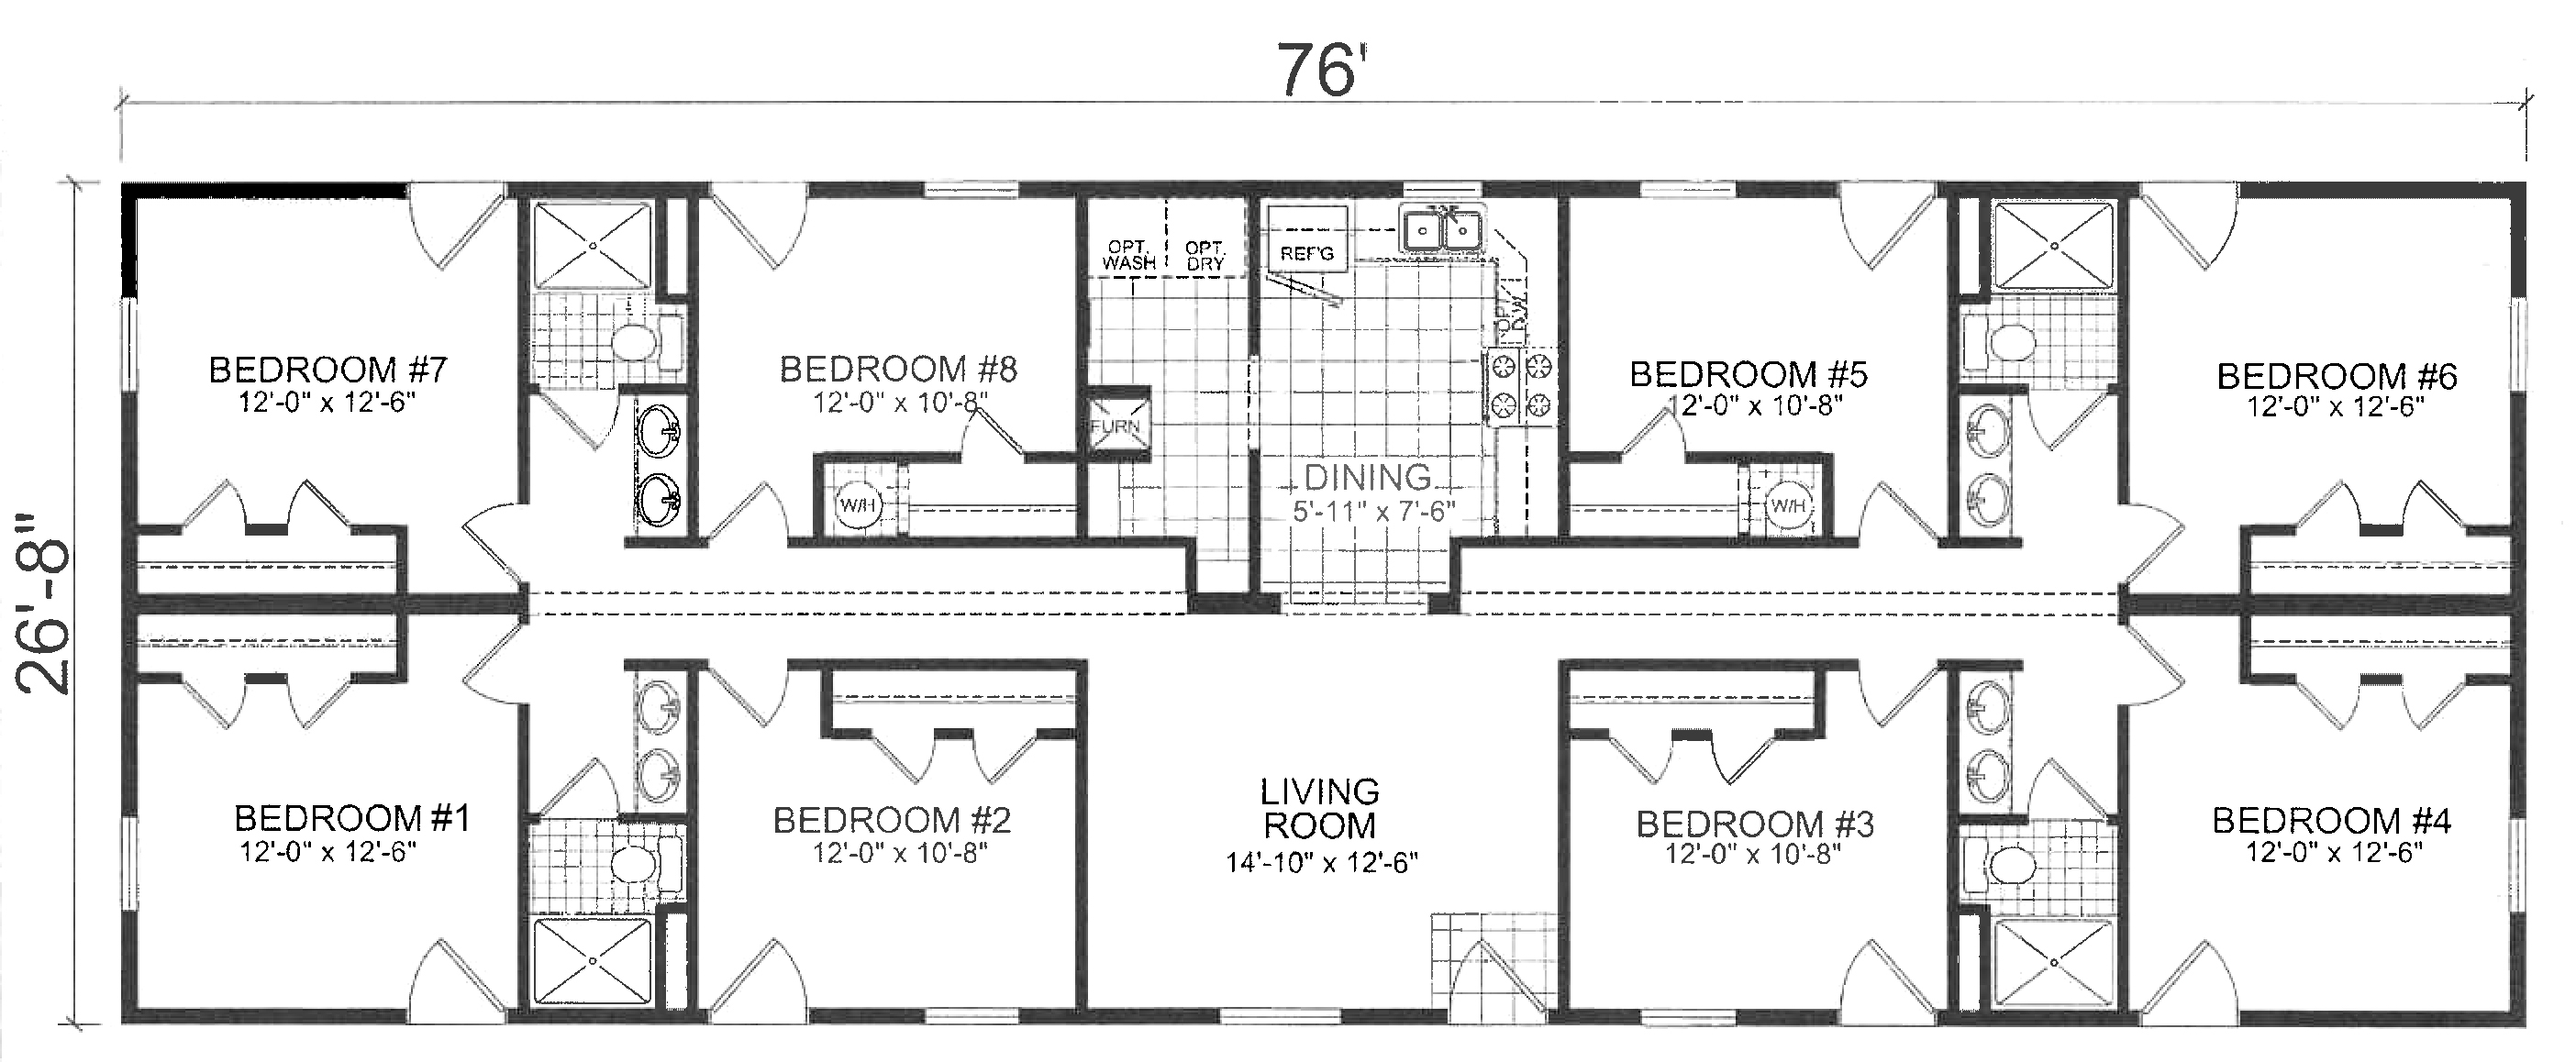 Pin 10 Floor Plan On Pinterest